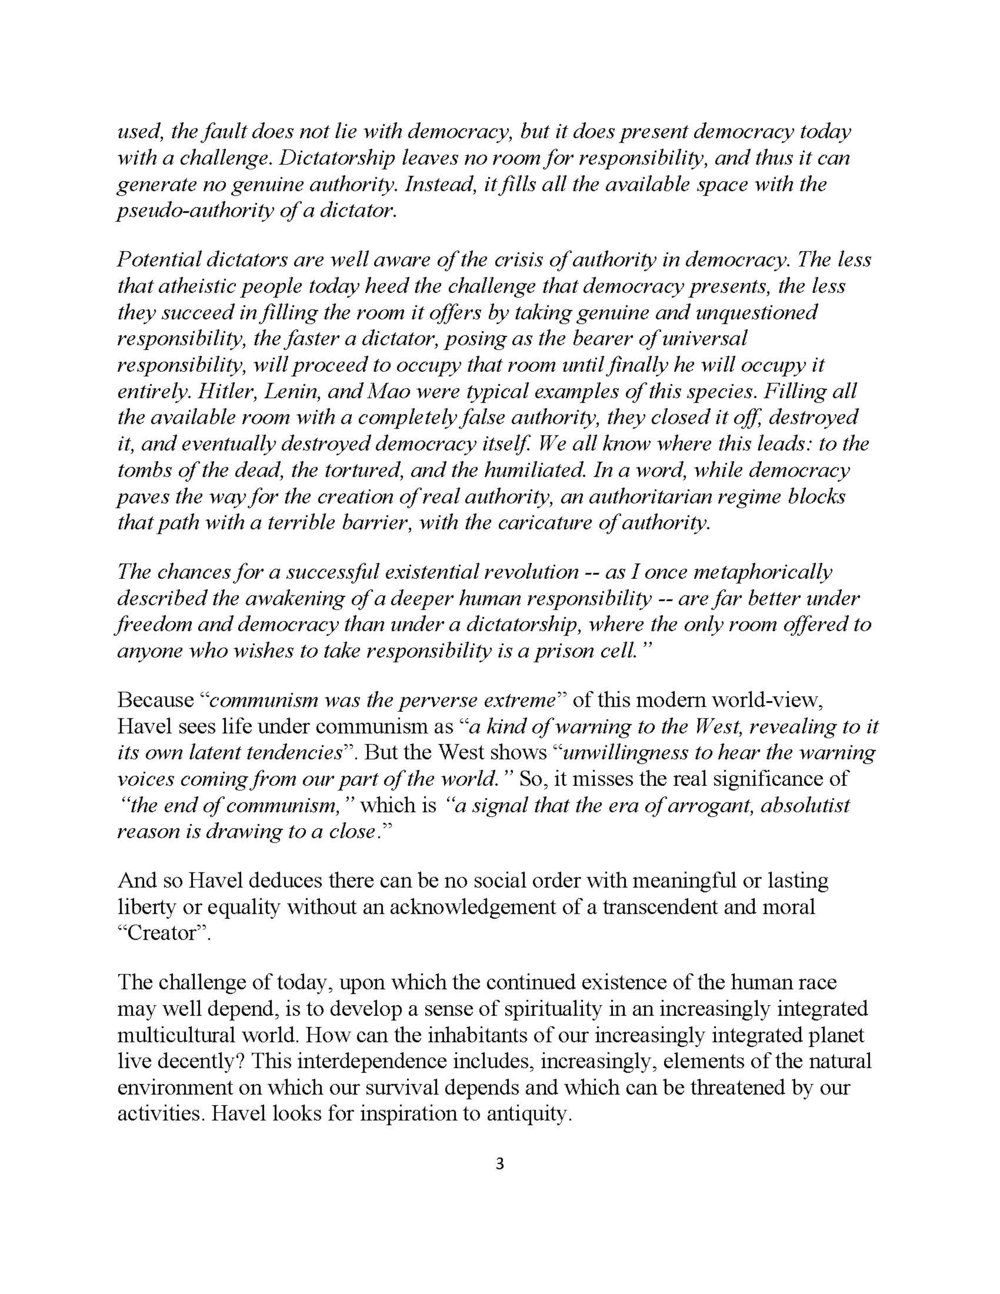 Vaclav Havel -A Reflection_Page_3.jpg